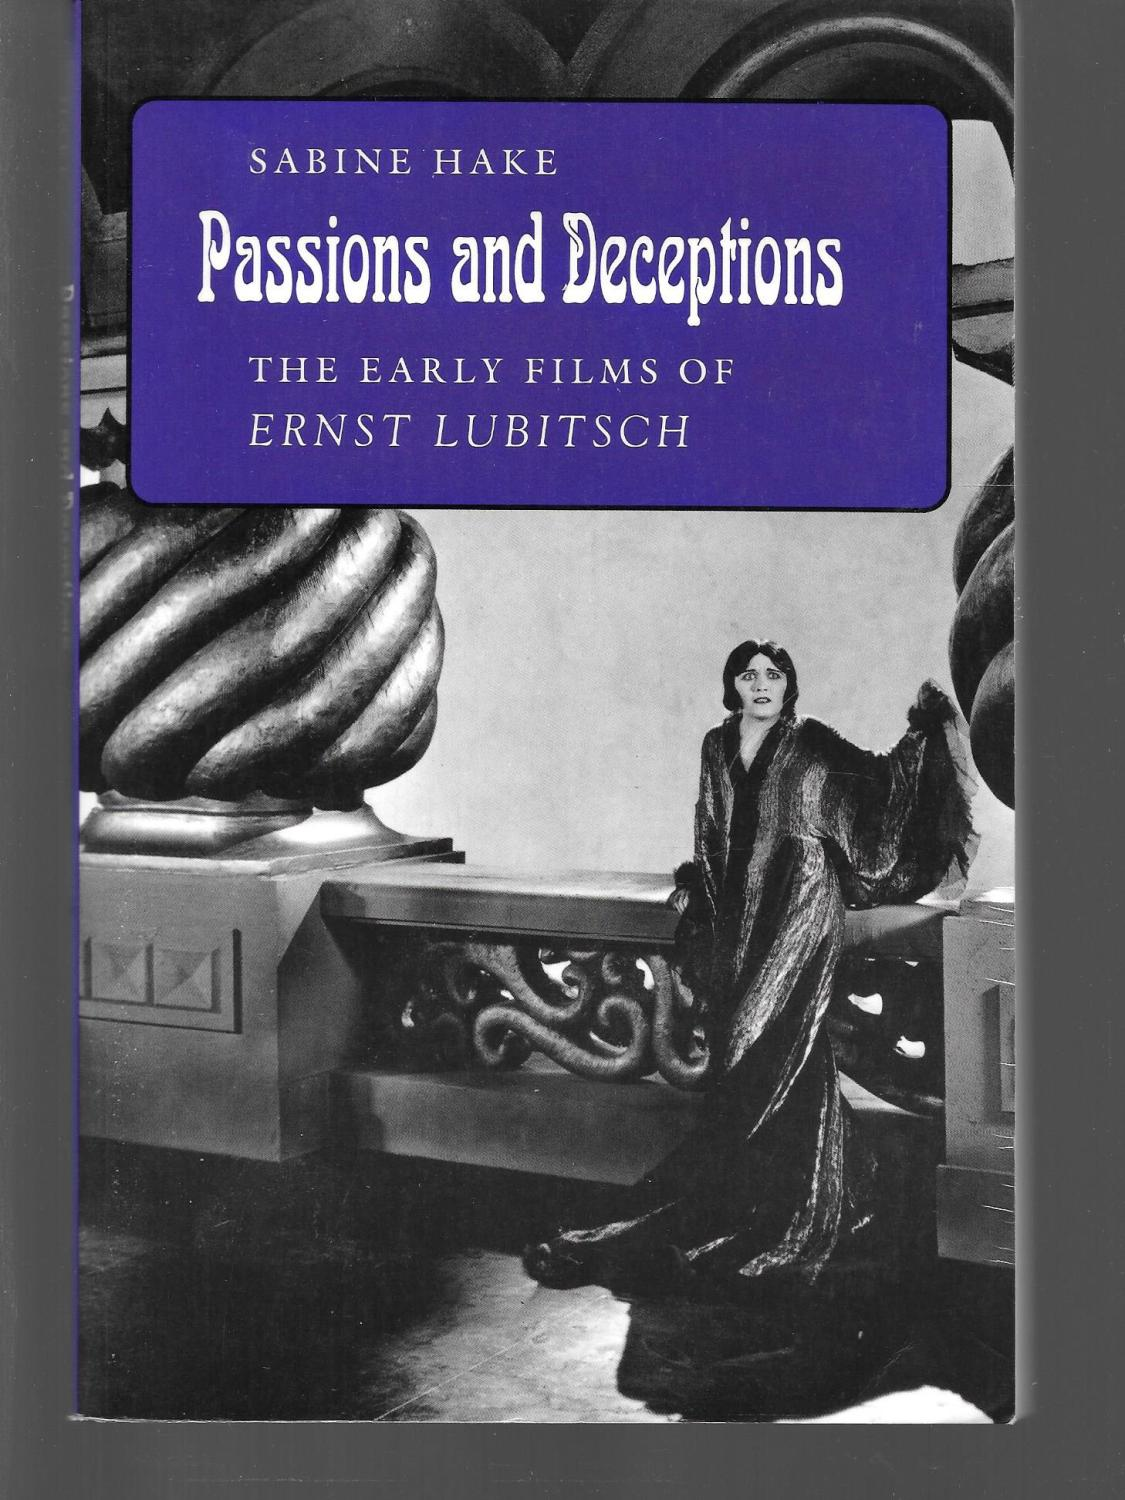 passions and deceptions the early films of ernst lubitsch - sabine hake ( ernst lubitsch )